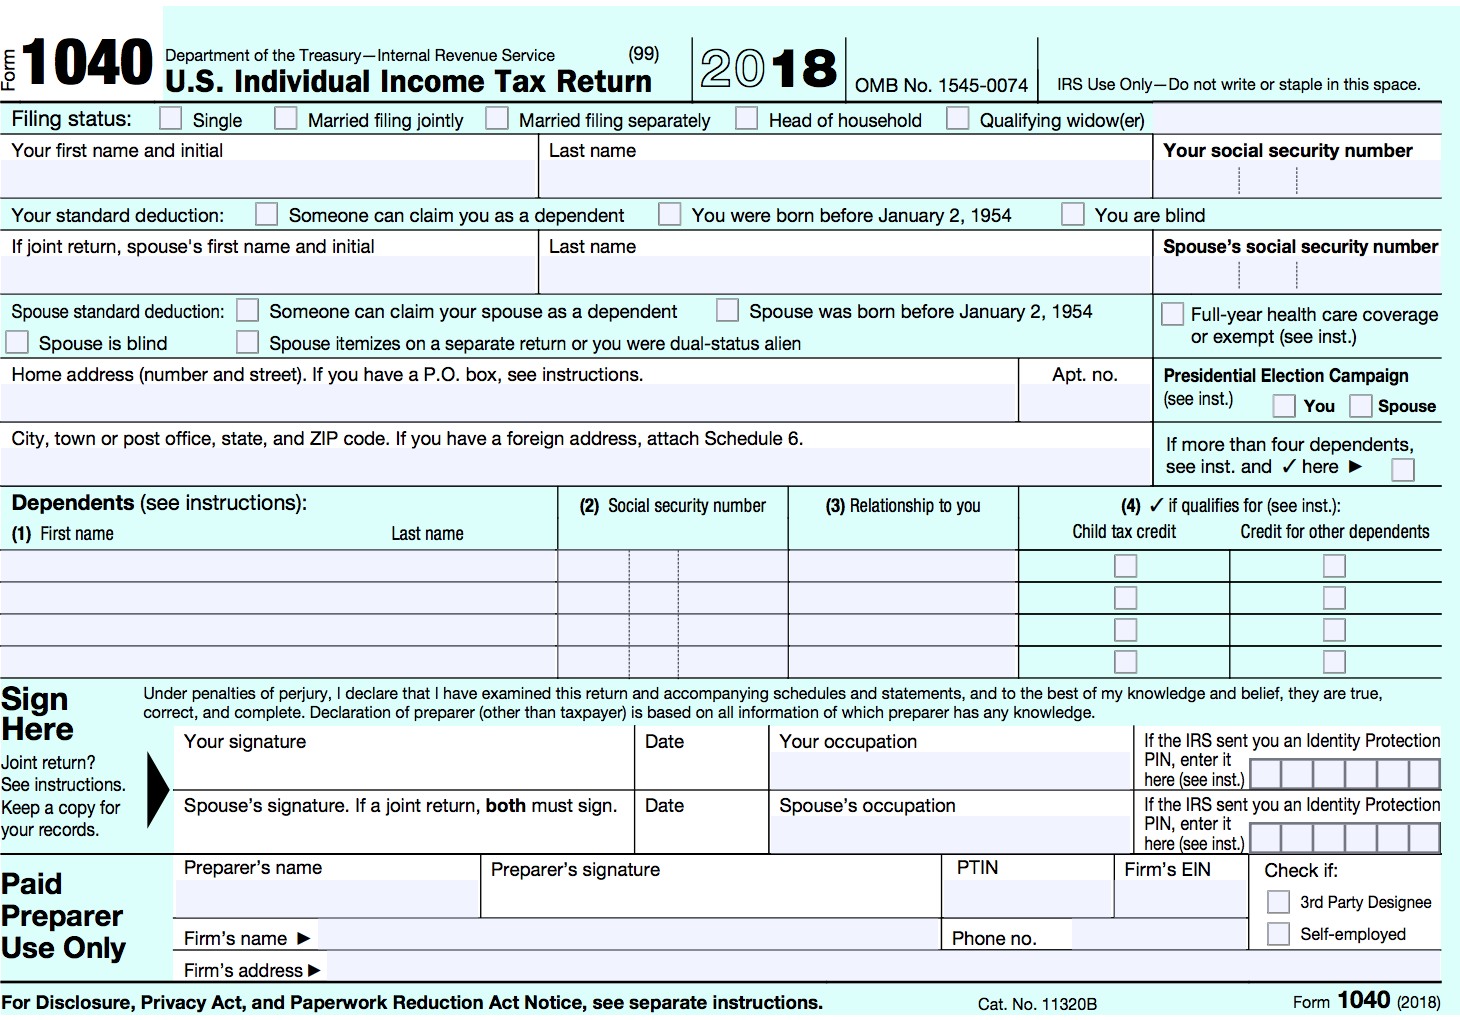 form 1040 credit for other dependents  Posts | Gelman & Pelesh, P.C.